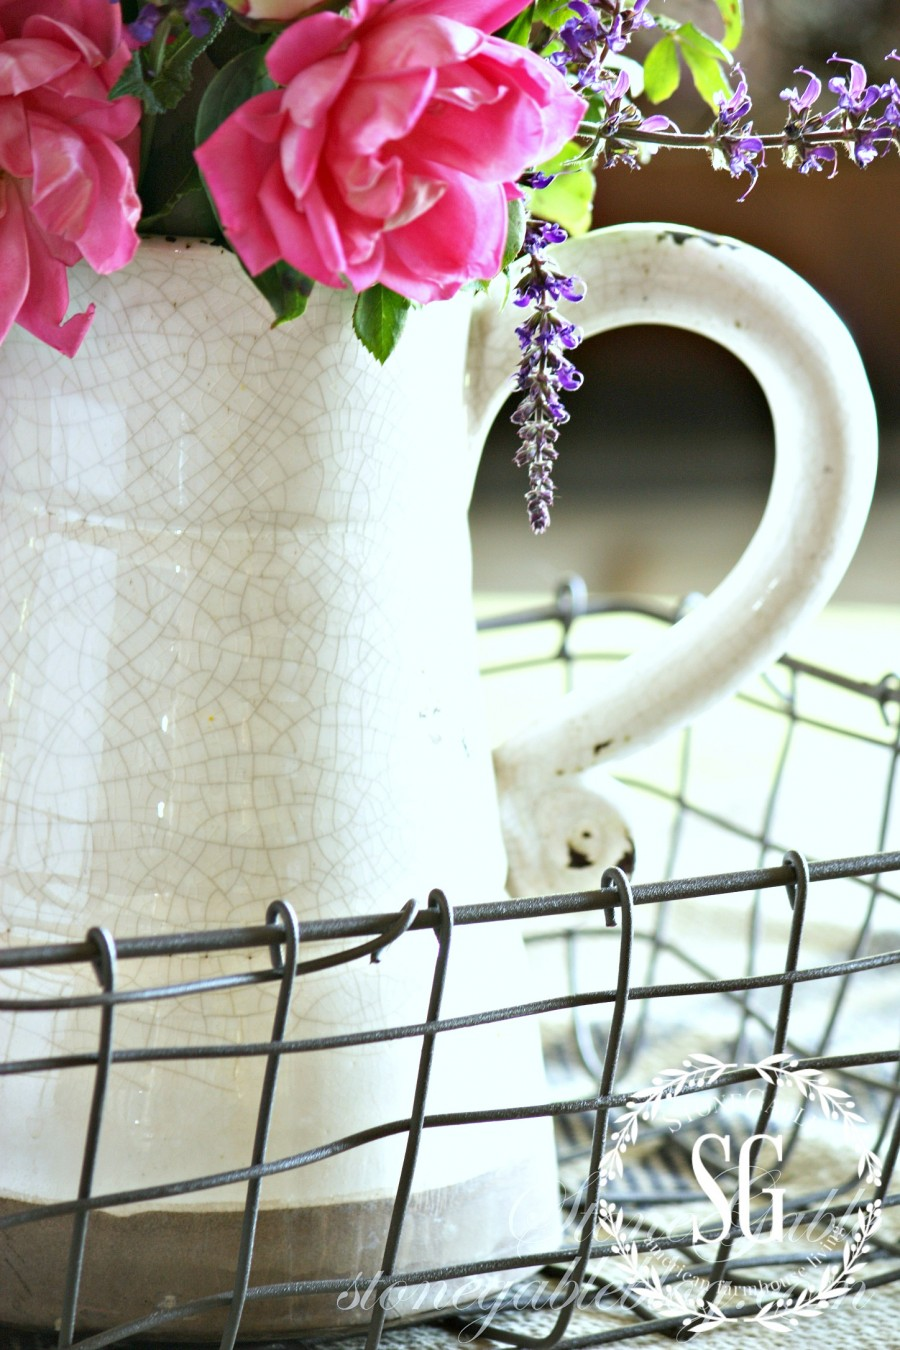 TIPS FOR ARRANGING GARDEN FLOWERS-use vintage containers-stonegableblog.com